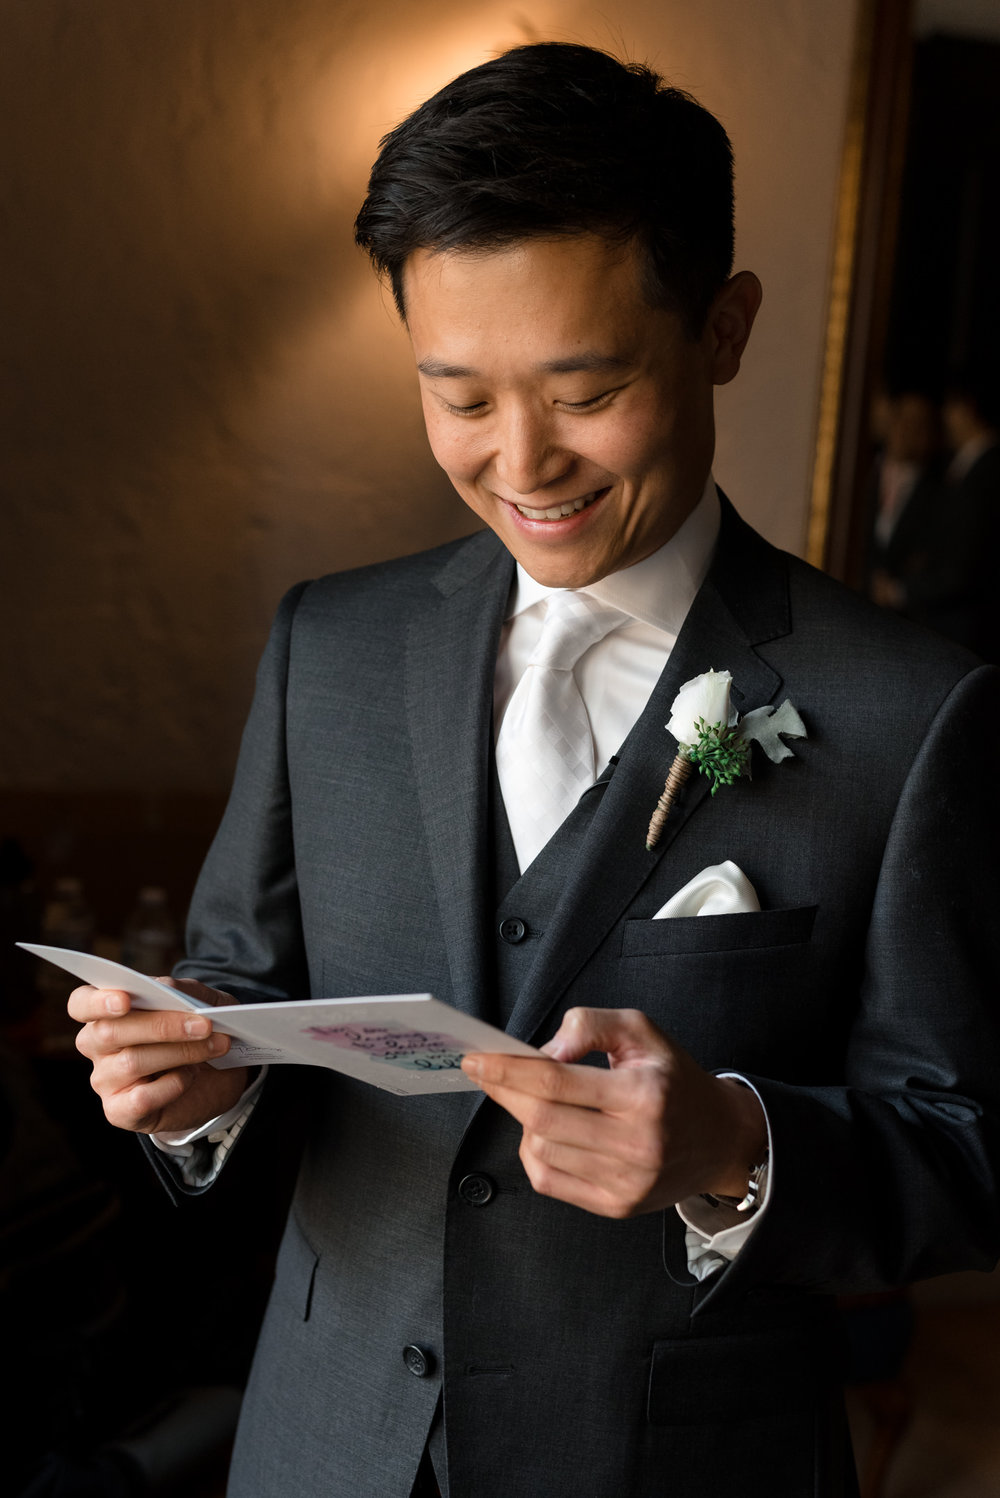 Asian Groom Smiles and Reads Wedding Card from Bride